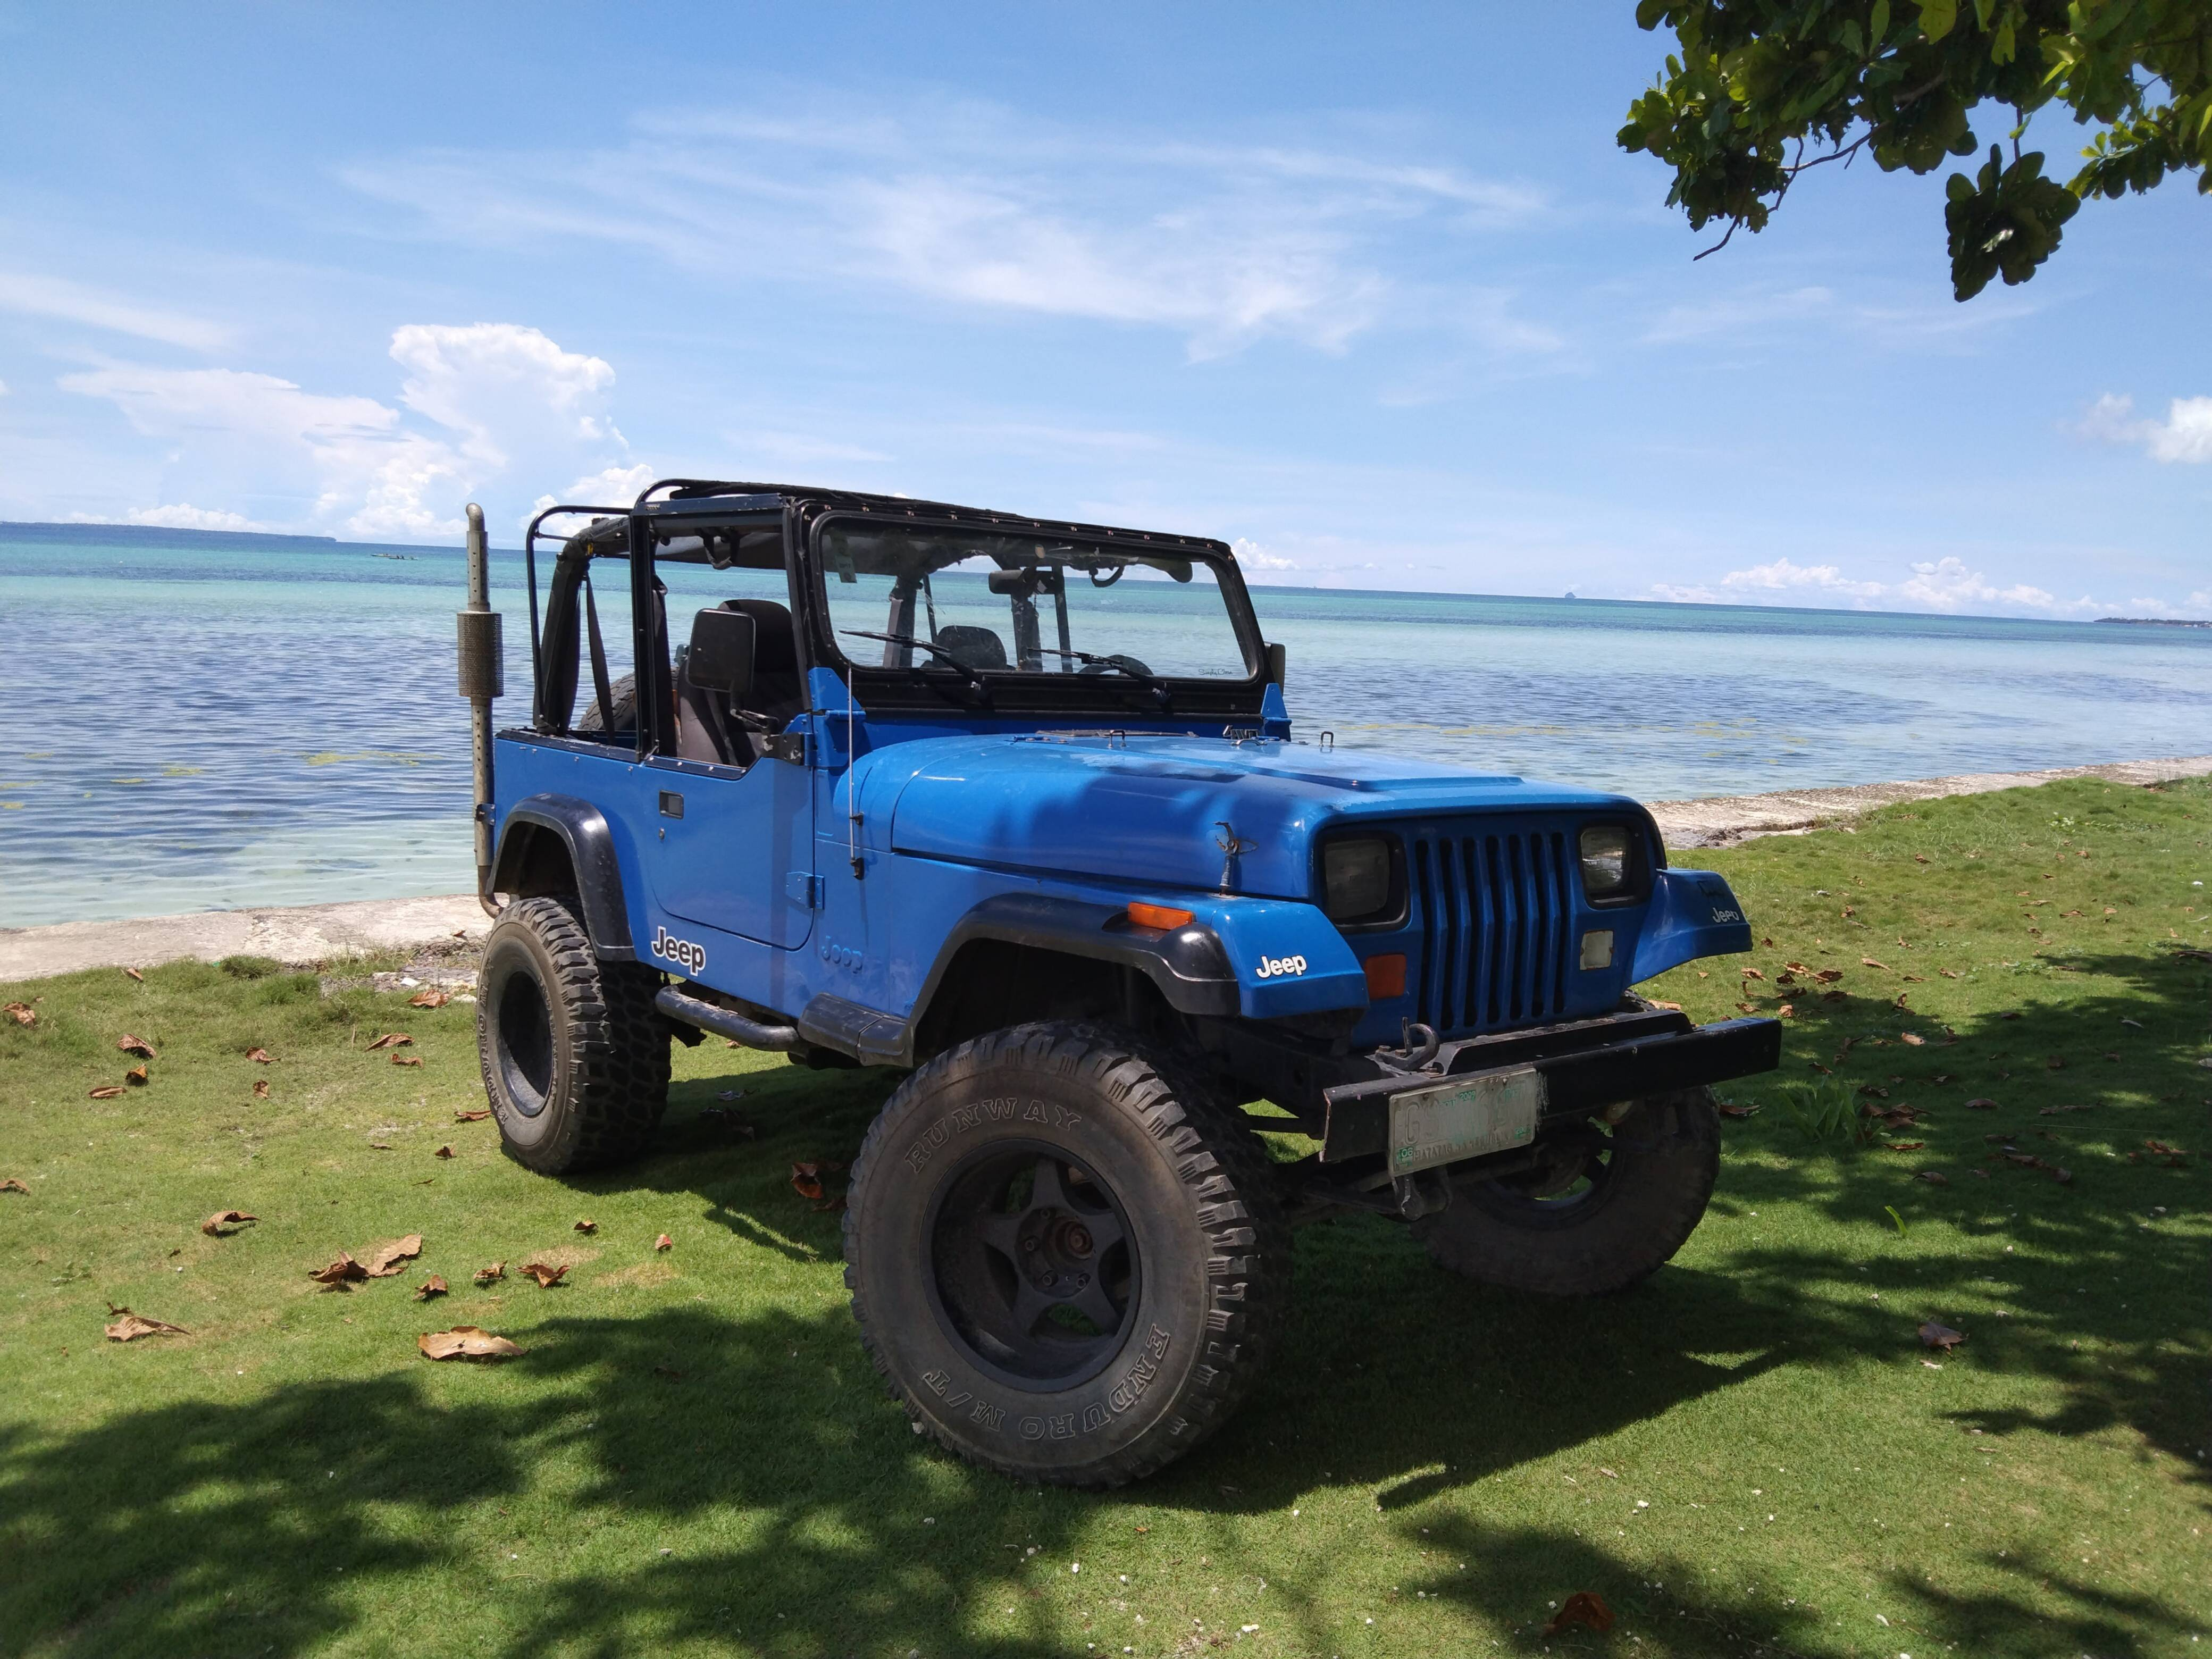 1994 Jeep Wrangler Unlimited